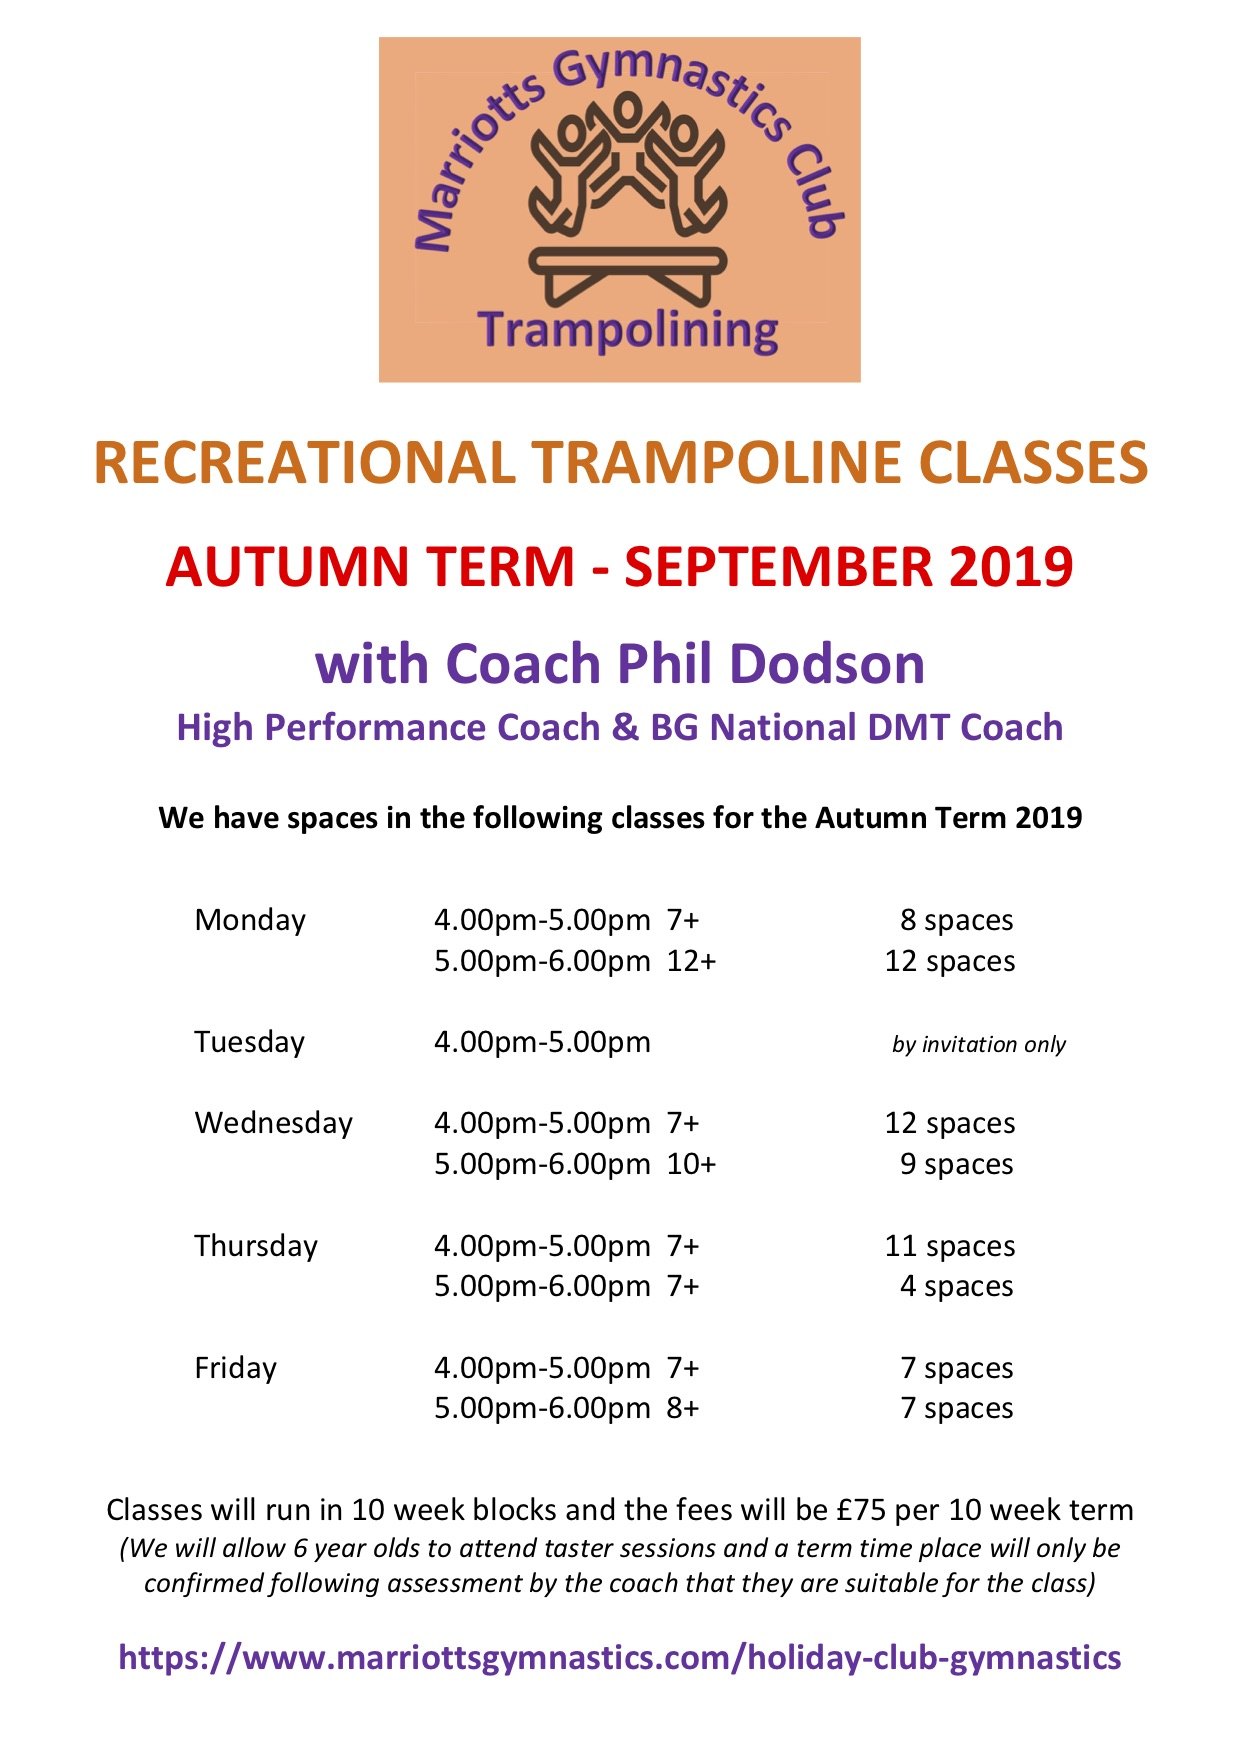 Trampoline Class Taster Session Spaces 2019.jpg